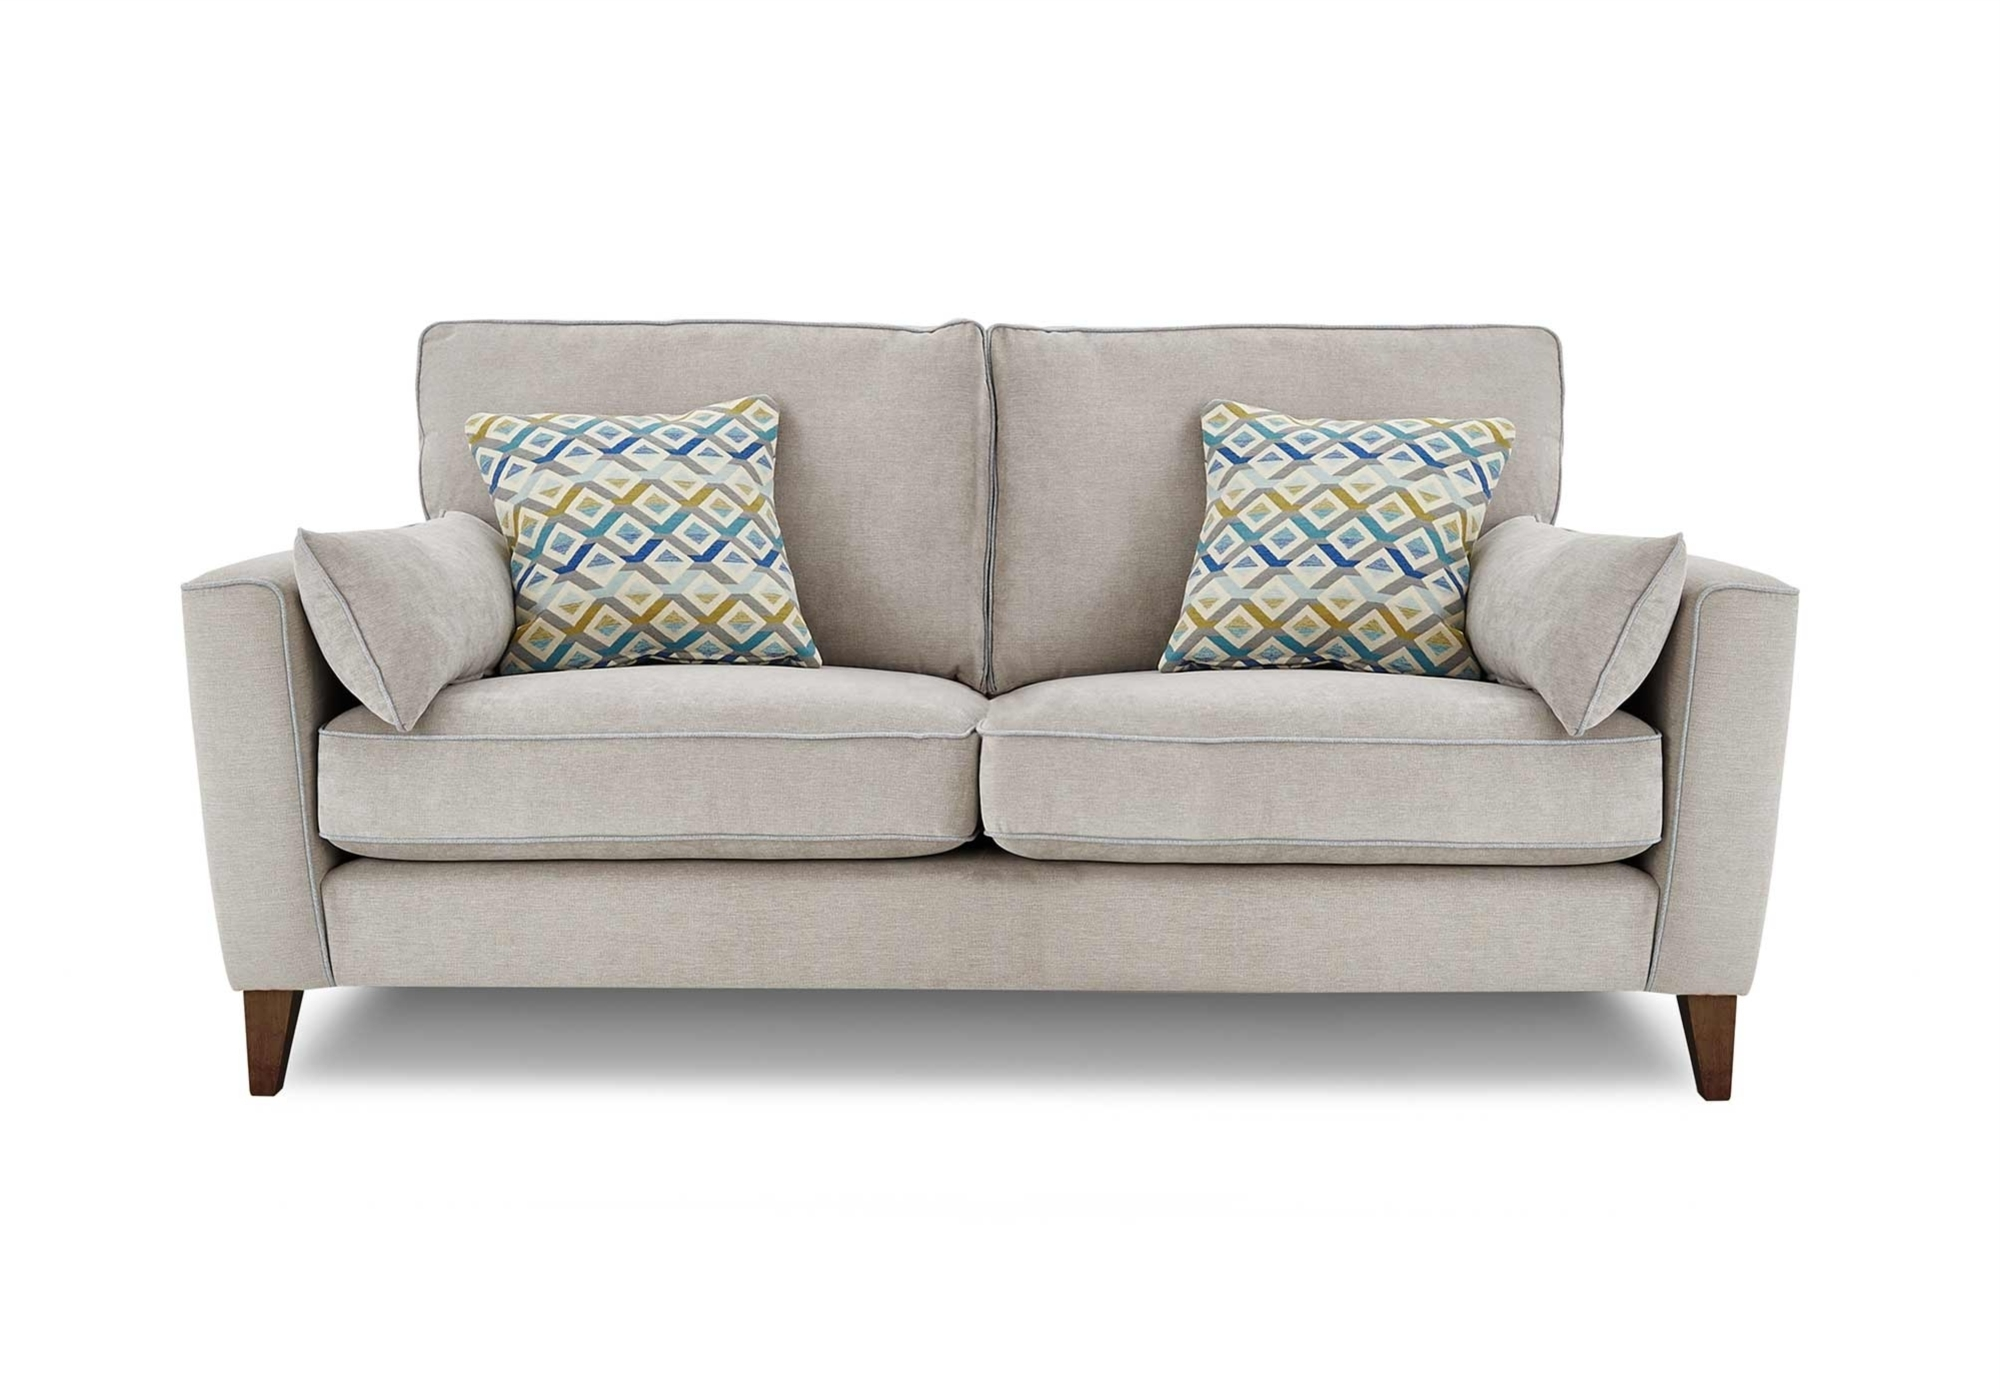 Two Seater Sofas For Well Liked Two Seater Sofa Silfre Inside 2 Seat Sofa On Sale With Regard To (View 14 of 20)